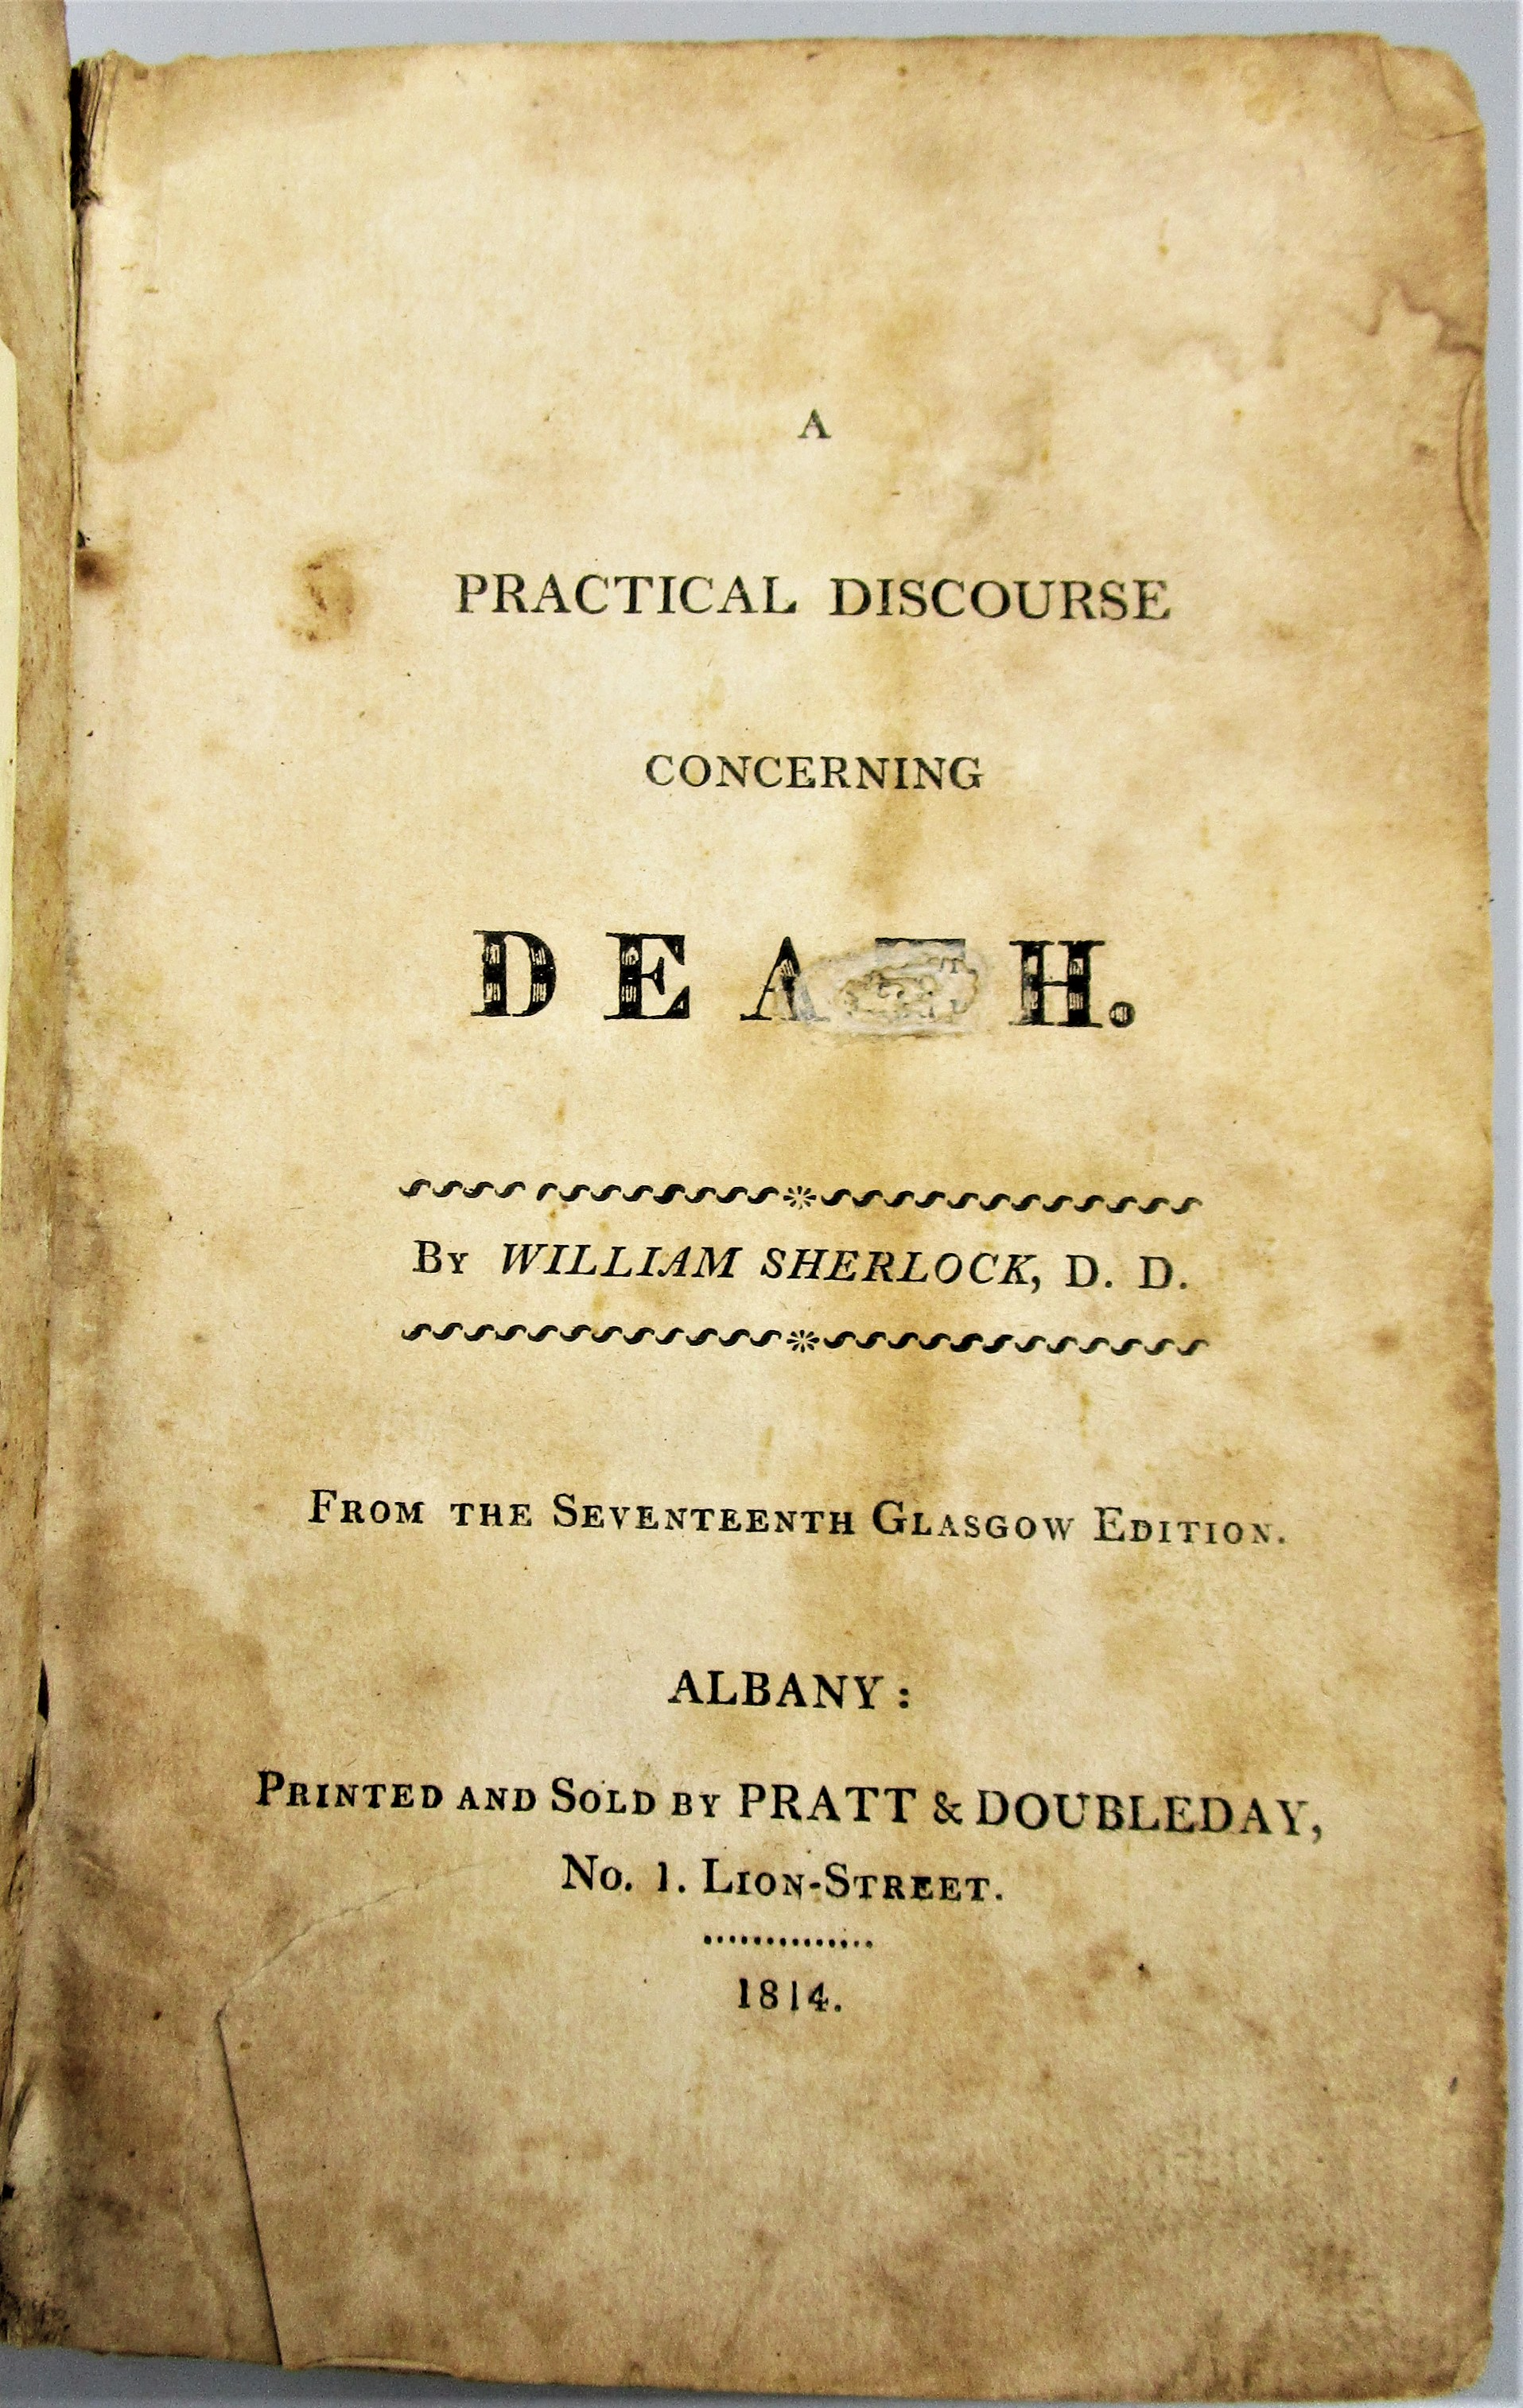 A PRACTICAL DISCOURSE CONCERNING DEATH, by William Sherlock - 1814 [1st US Ed]